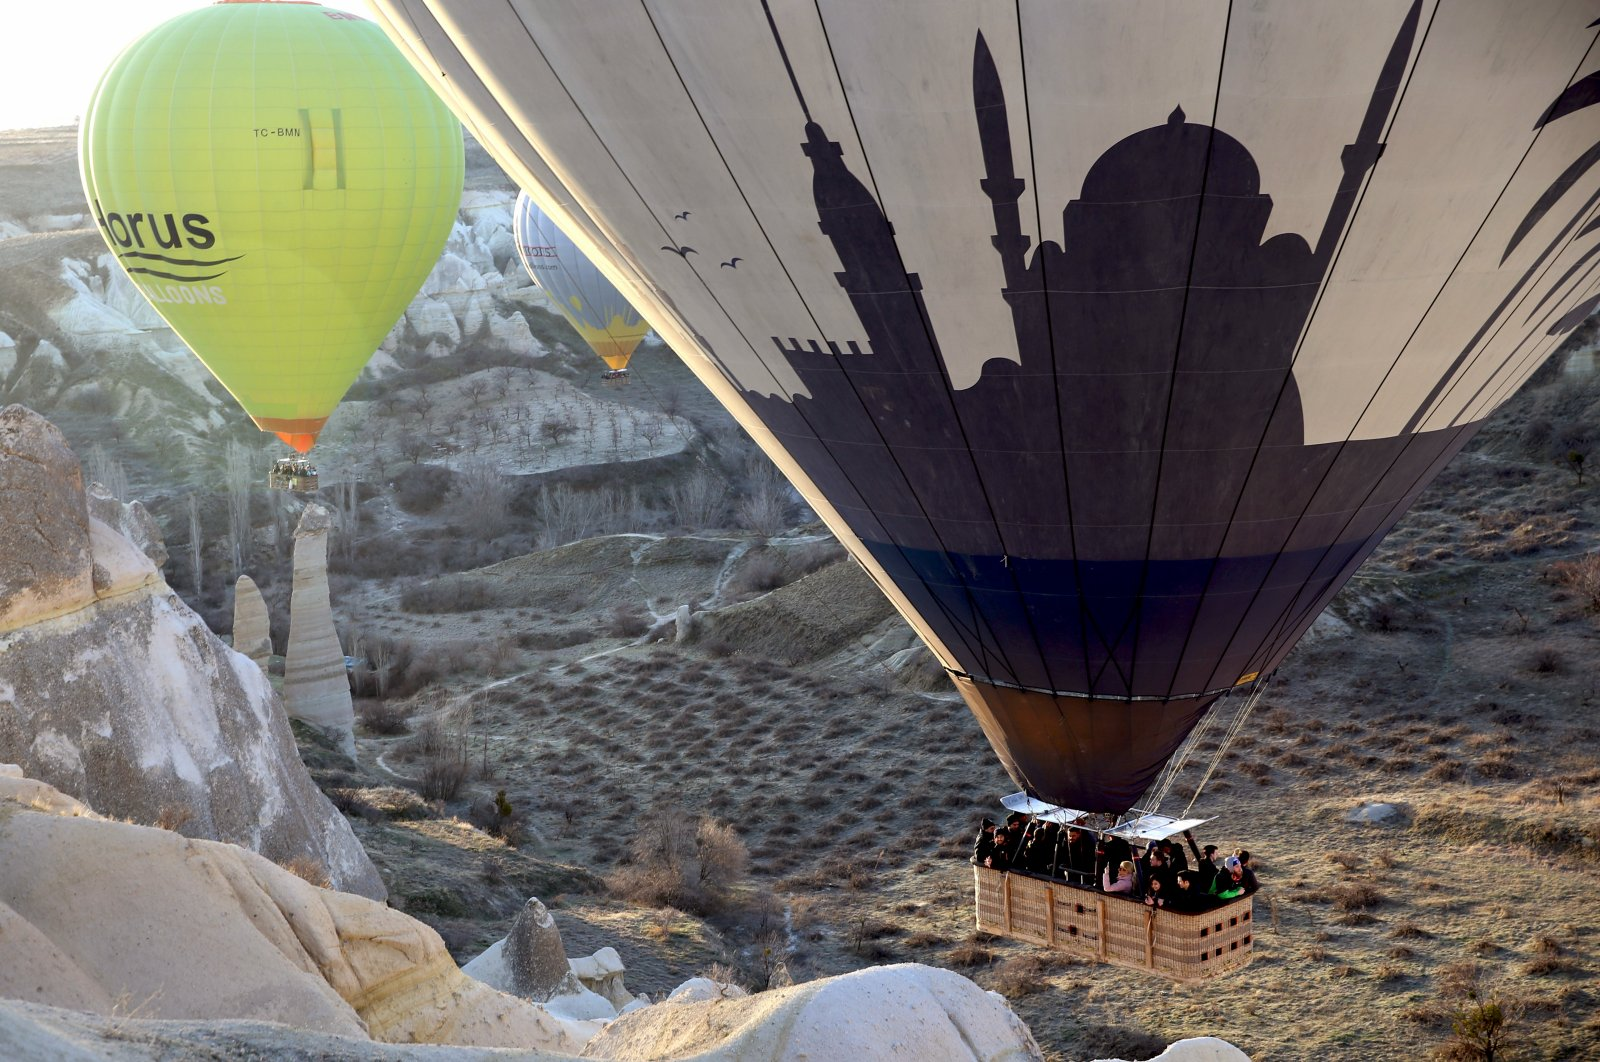 People are seen aboard a hot air balloon in Cappadocia, one of Turkey's top destinations, March 10, 2020. (AA Photo)